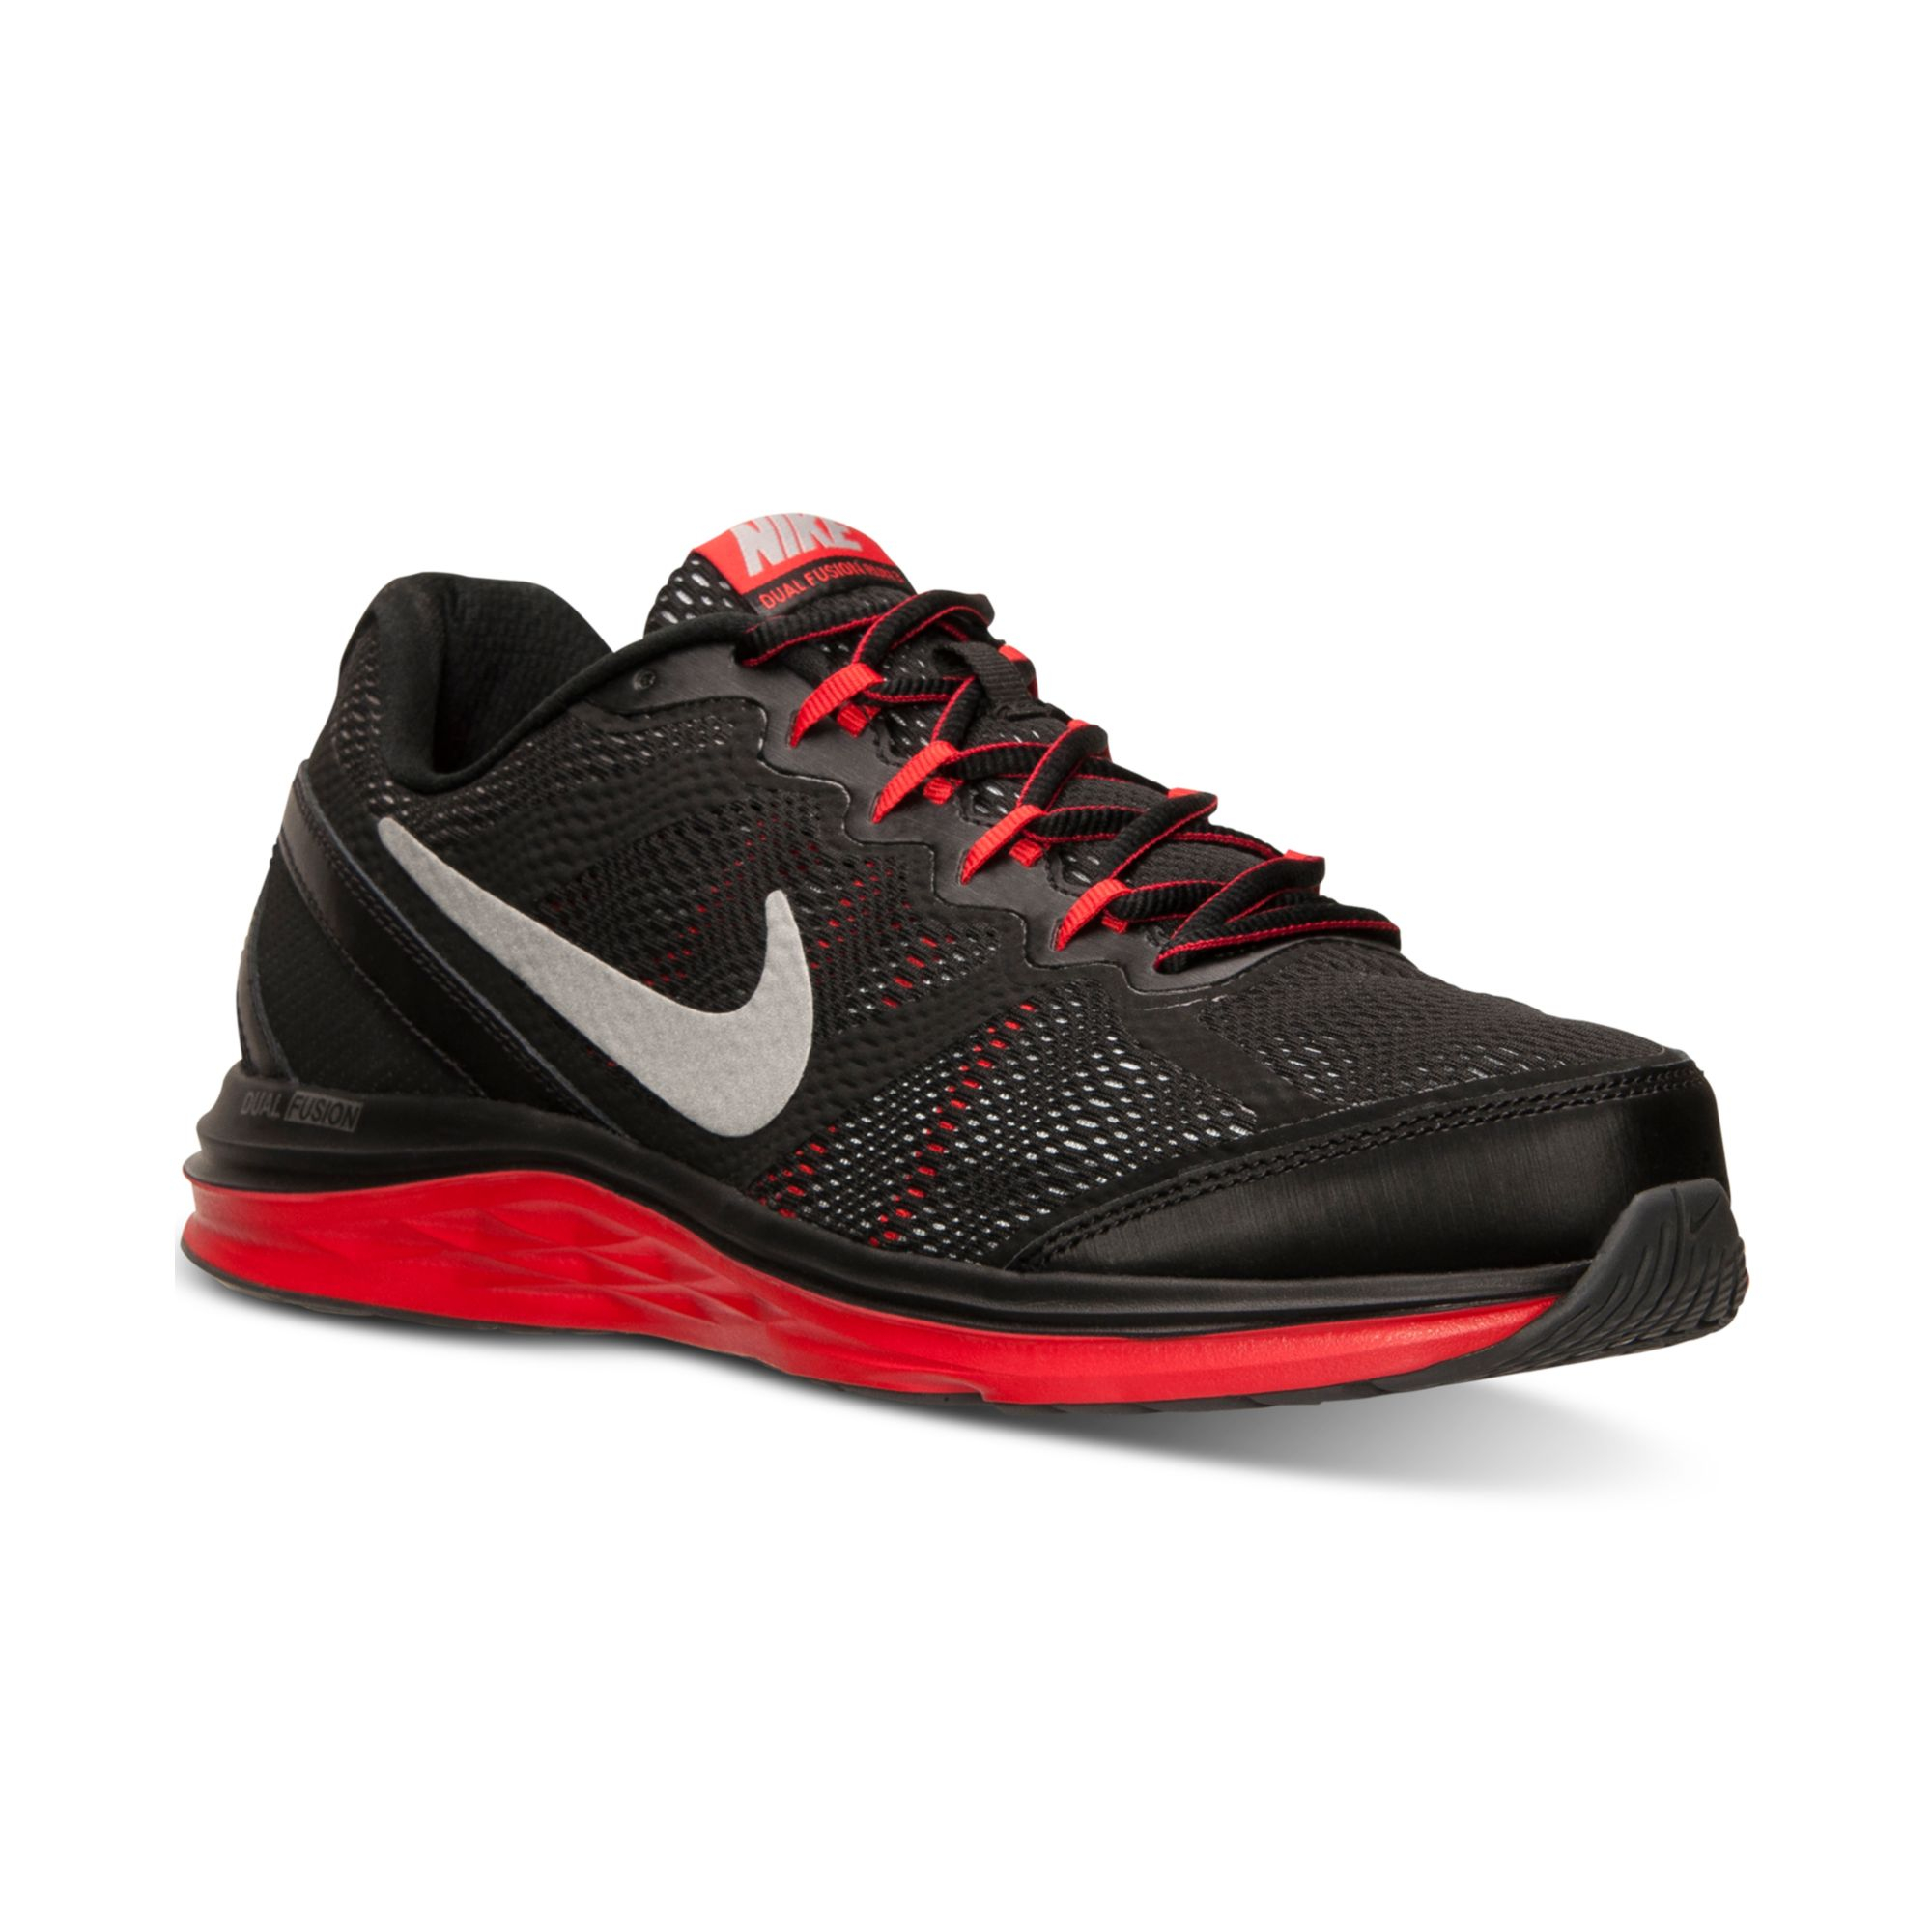 nike mens dual fusion run 3 running sneakers from finish line in gray for men drk gry mtllc. Black Bedroom Furniture Sets. Home Design Ideas